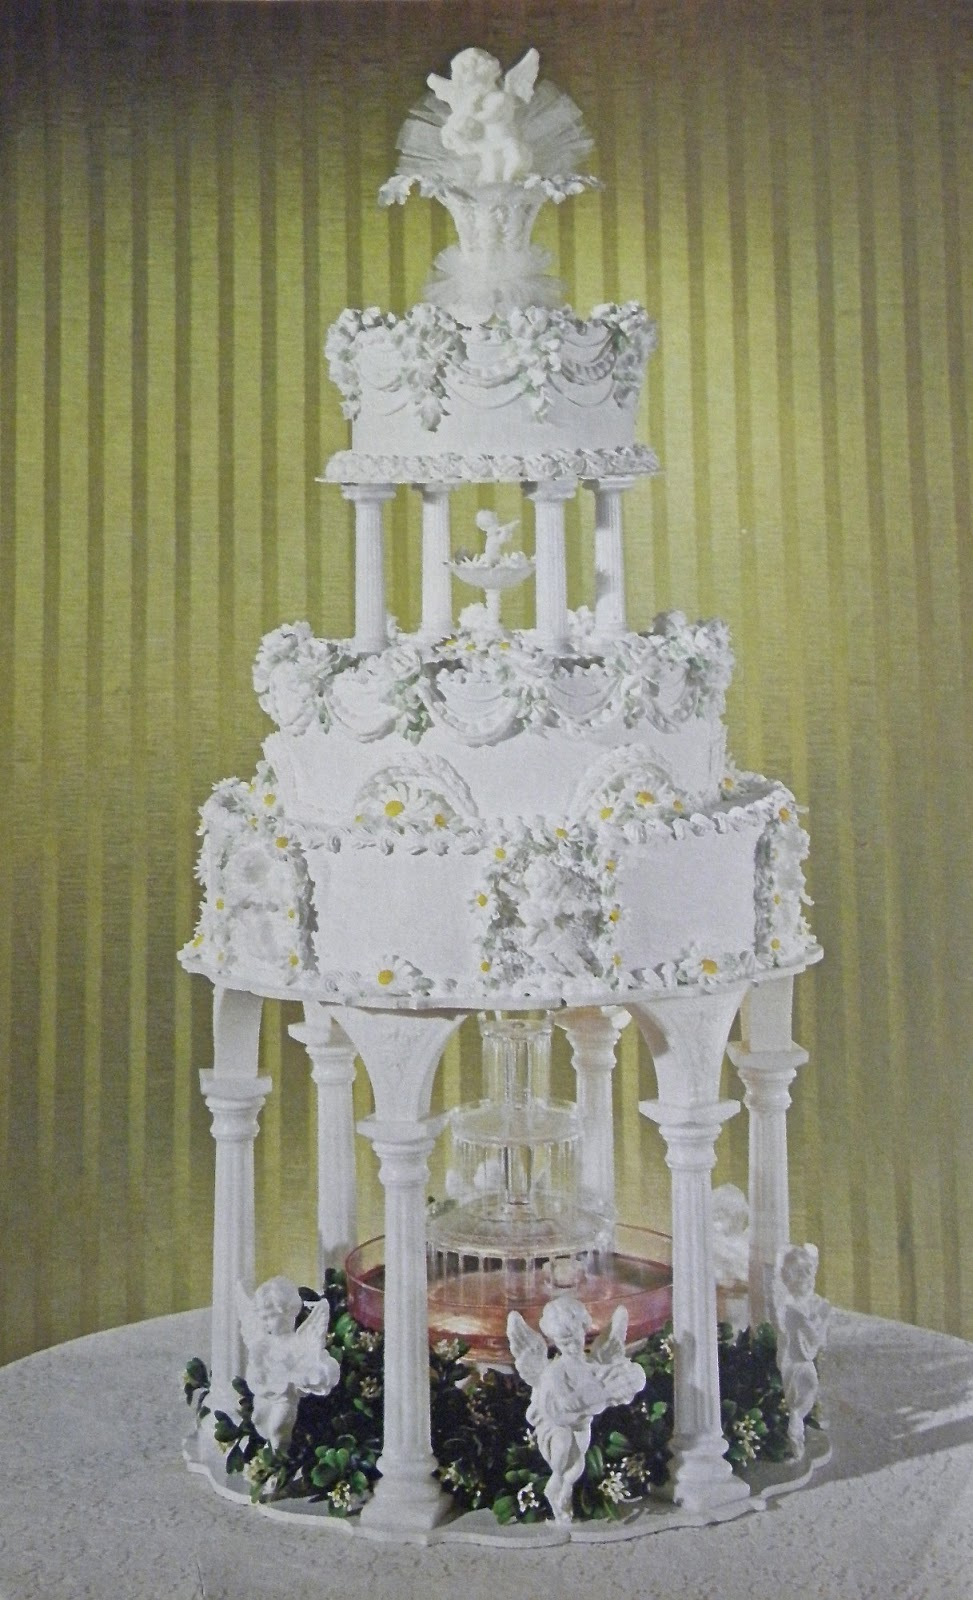 Vintage Wedding Cakes With Pillars